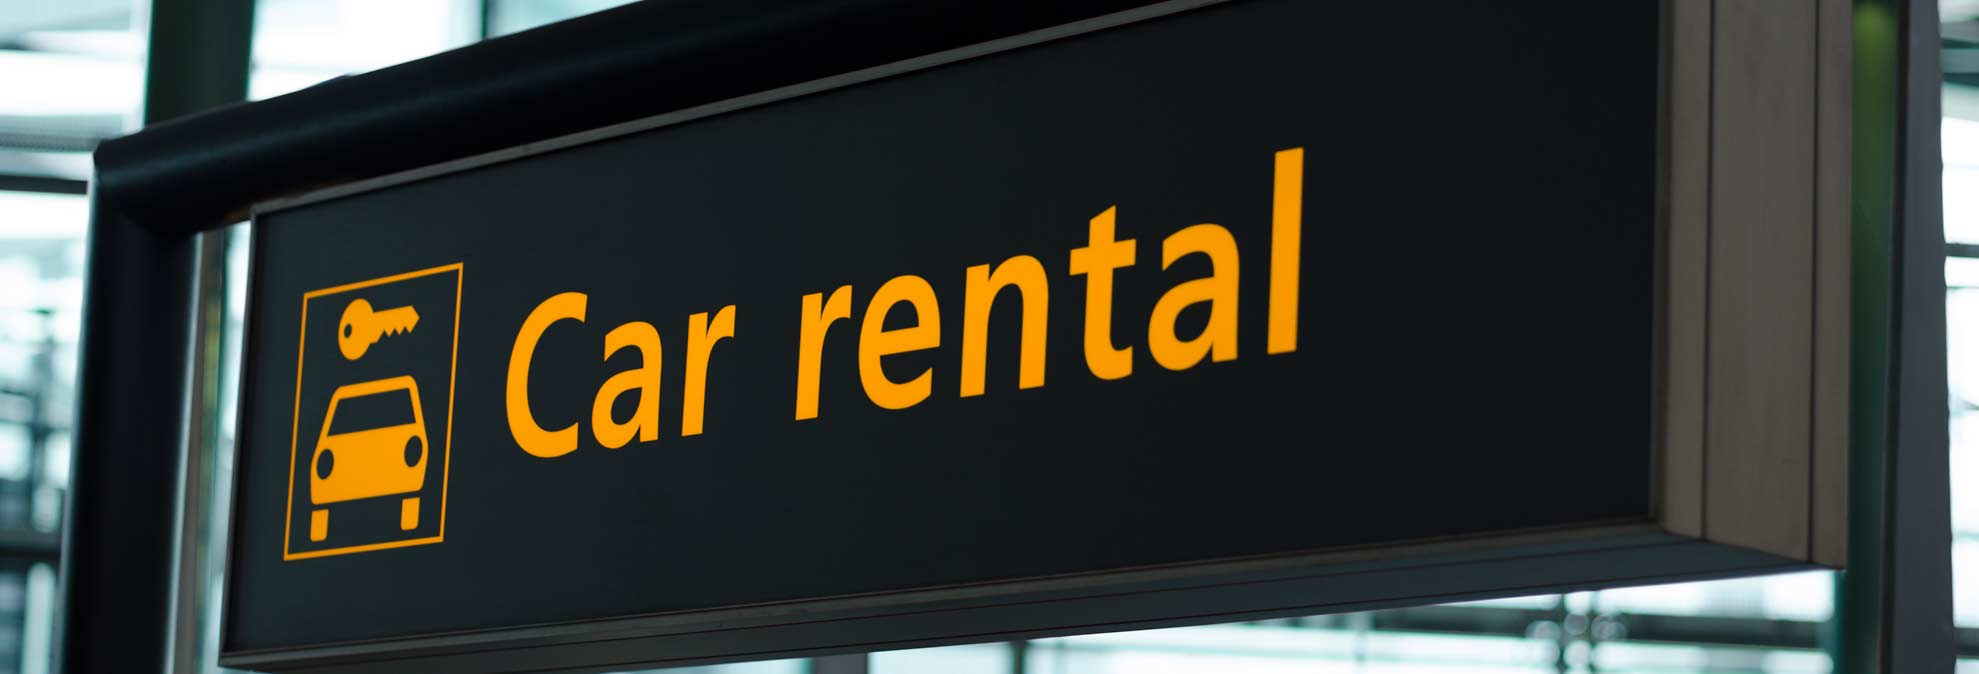 Best Rental Cars For A Happy Vacation Consumer Reports - Budget car rental show low az